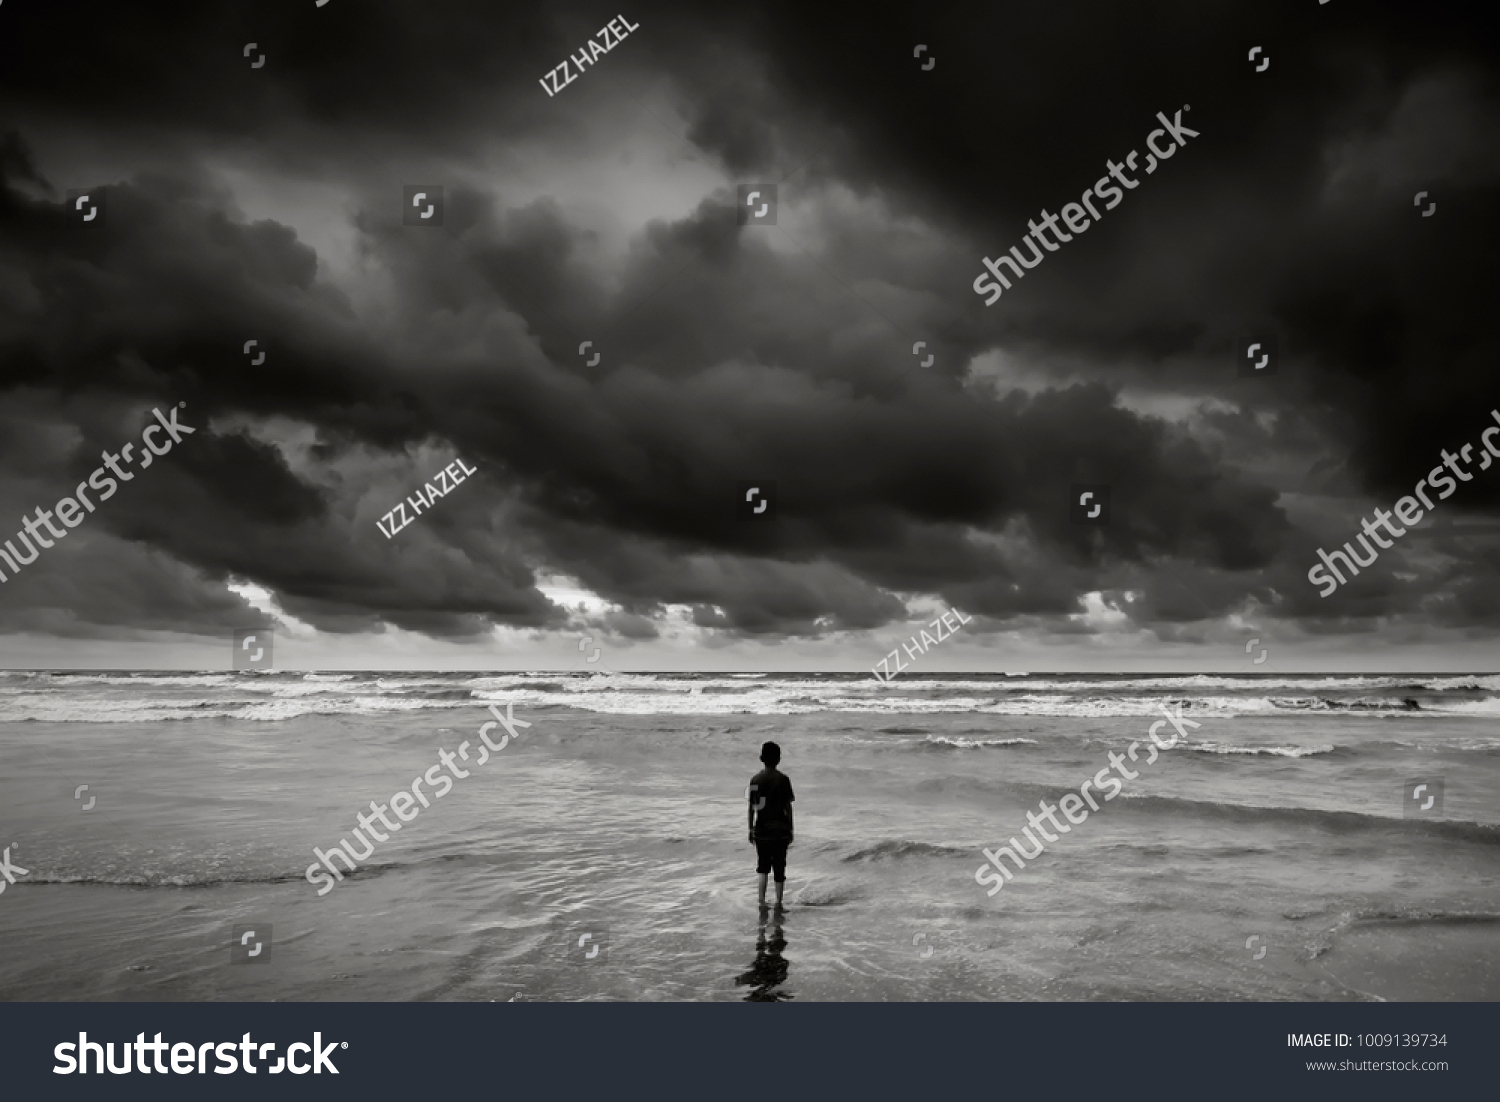 Alone boy near the beach with dramatic stormy sky during monsoon season